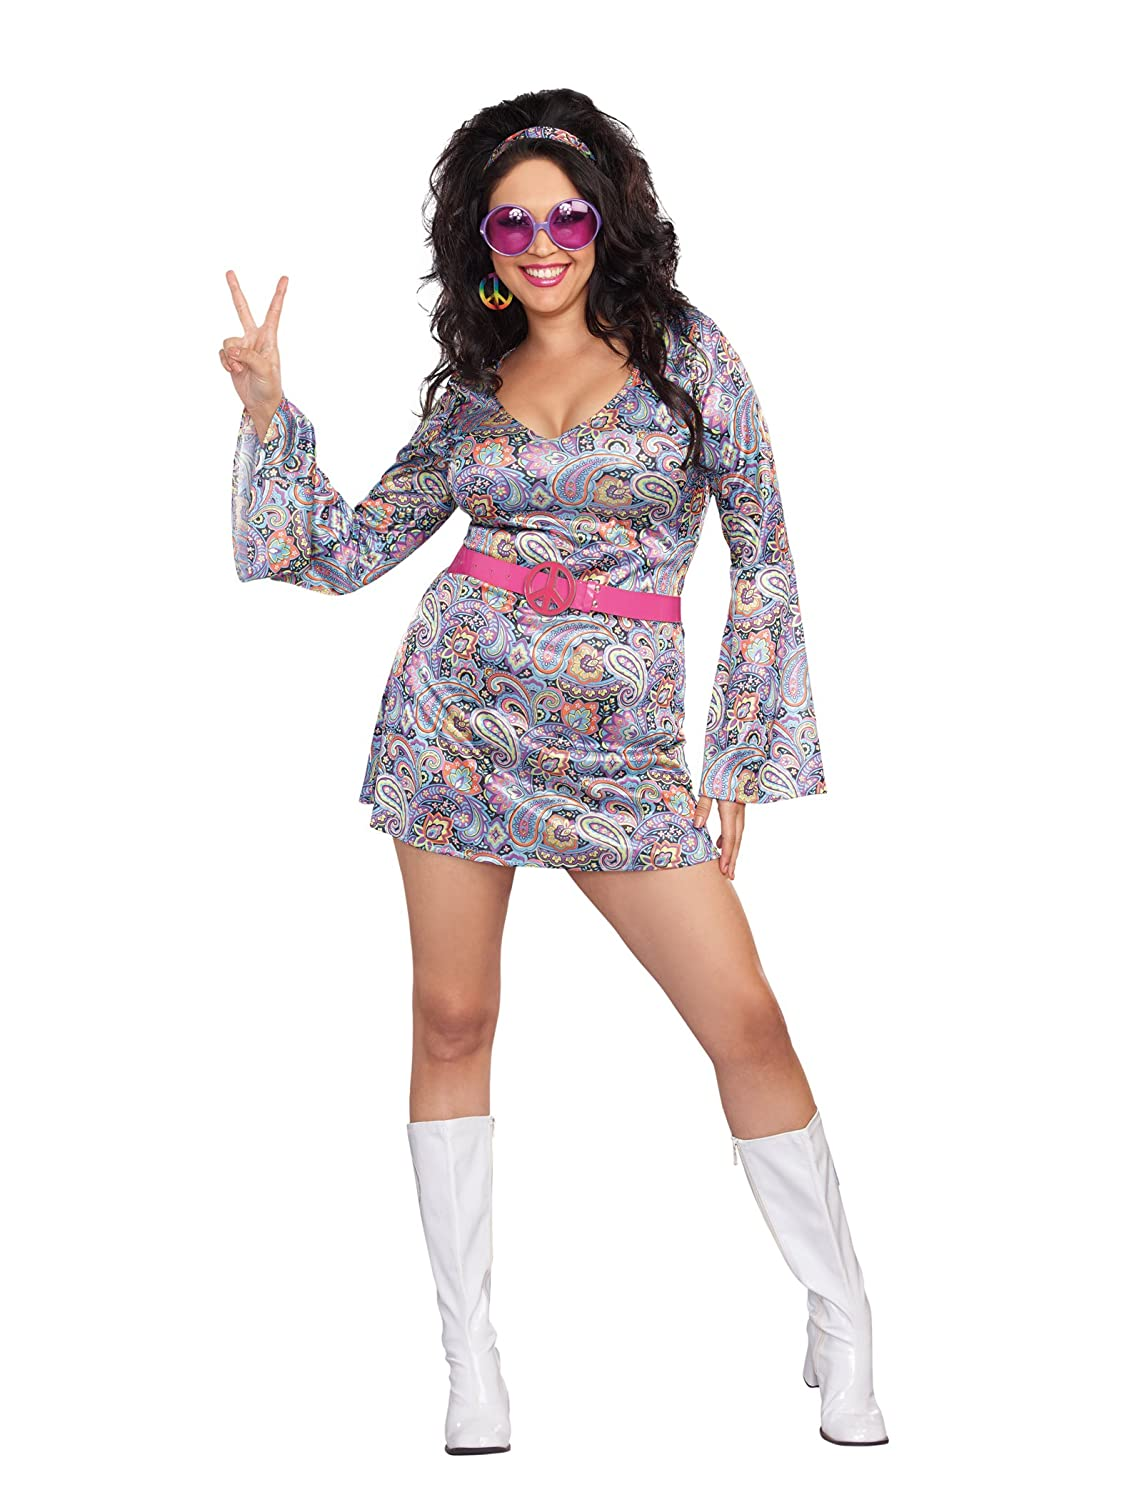 60s Costumes: Hippie, Go Go Dancer, Flower Child, Mod Style Dreamgirl Womens Plus-Size Love-Fest Costume $21.94 AT vintagedancer.com